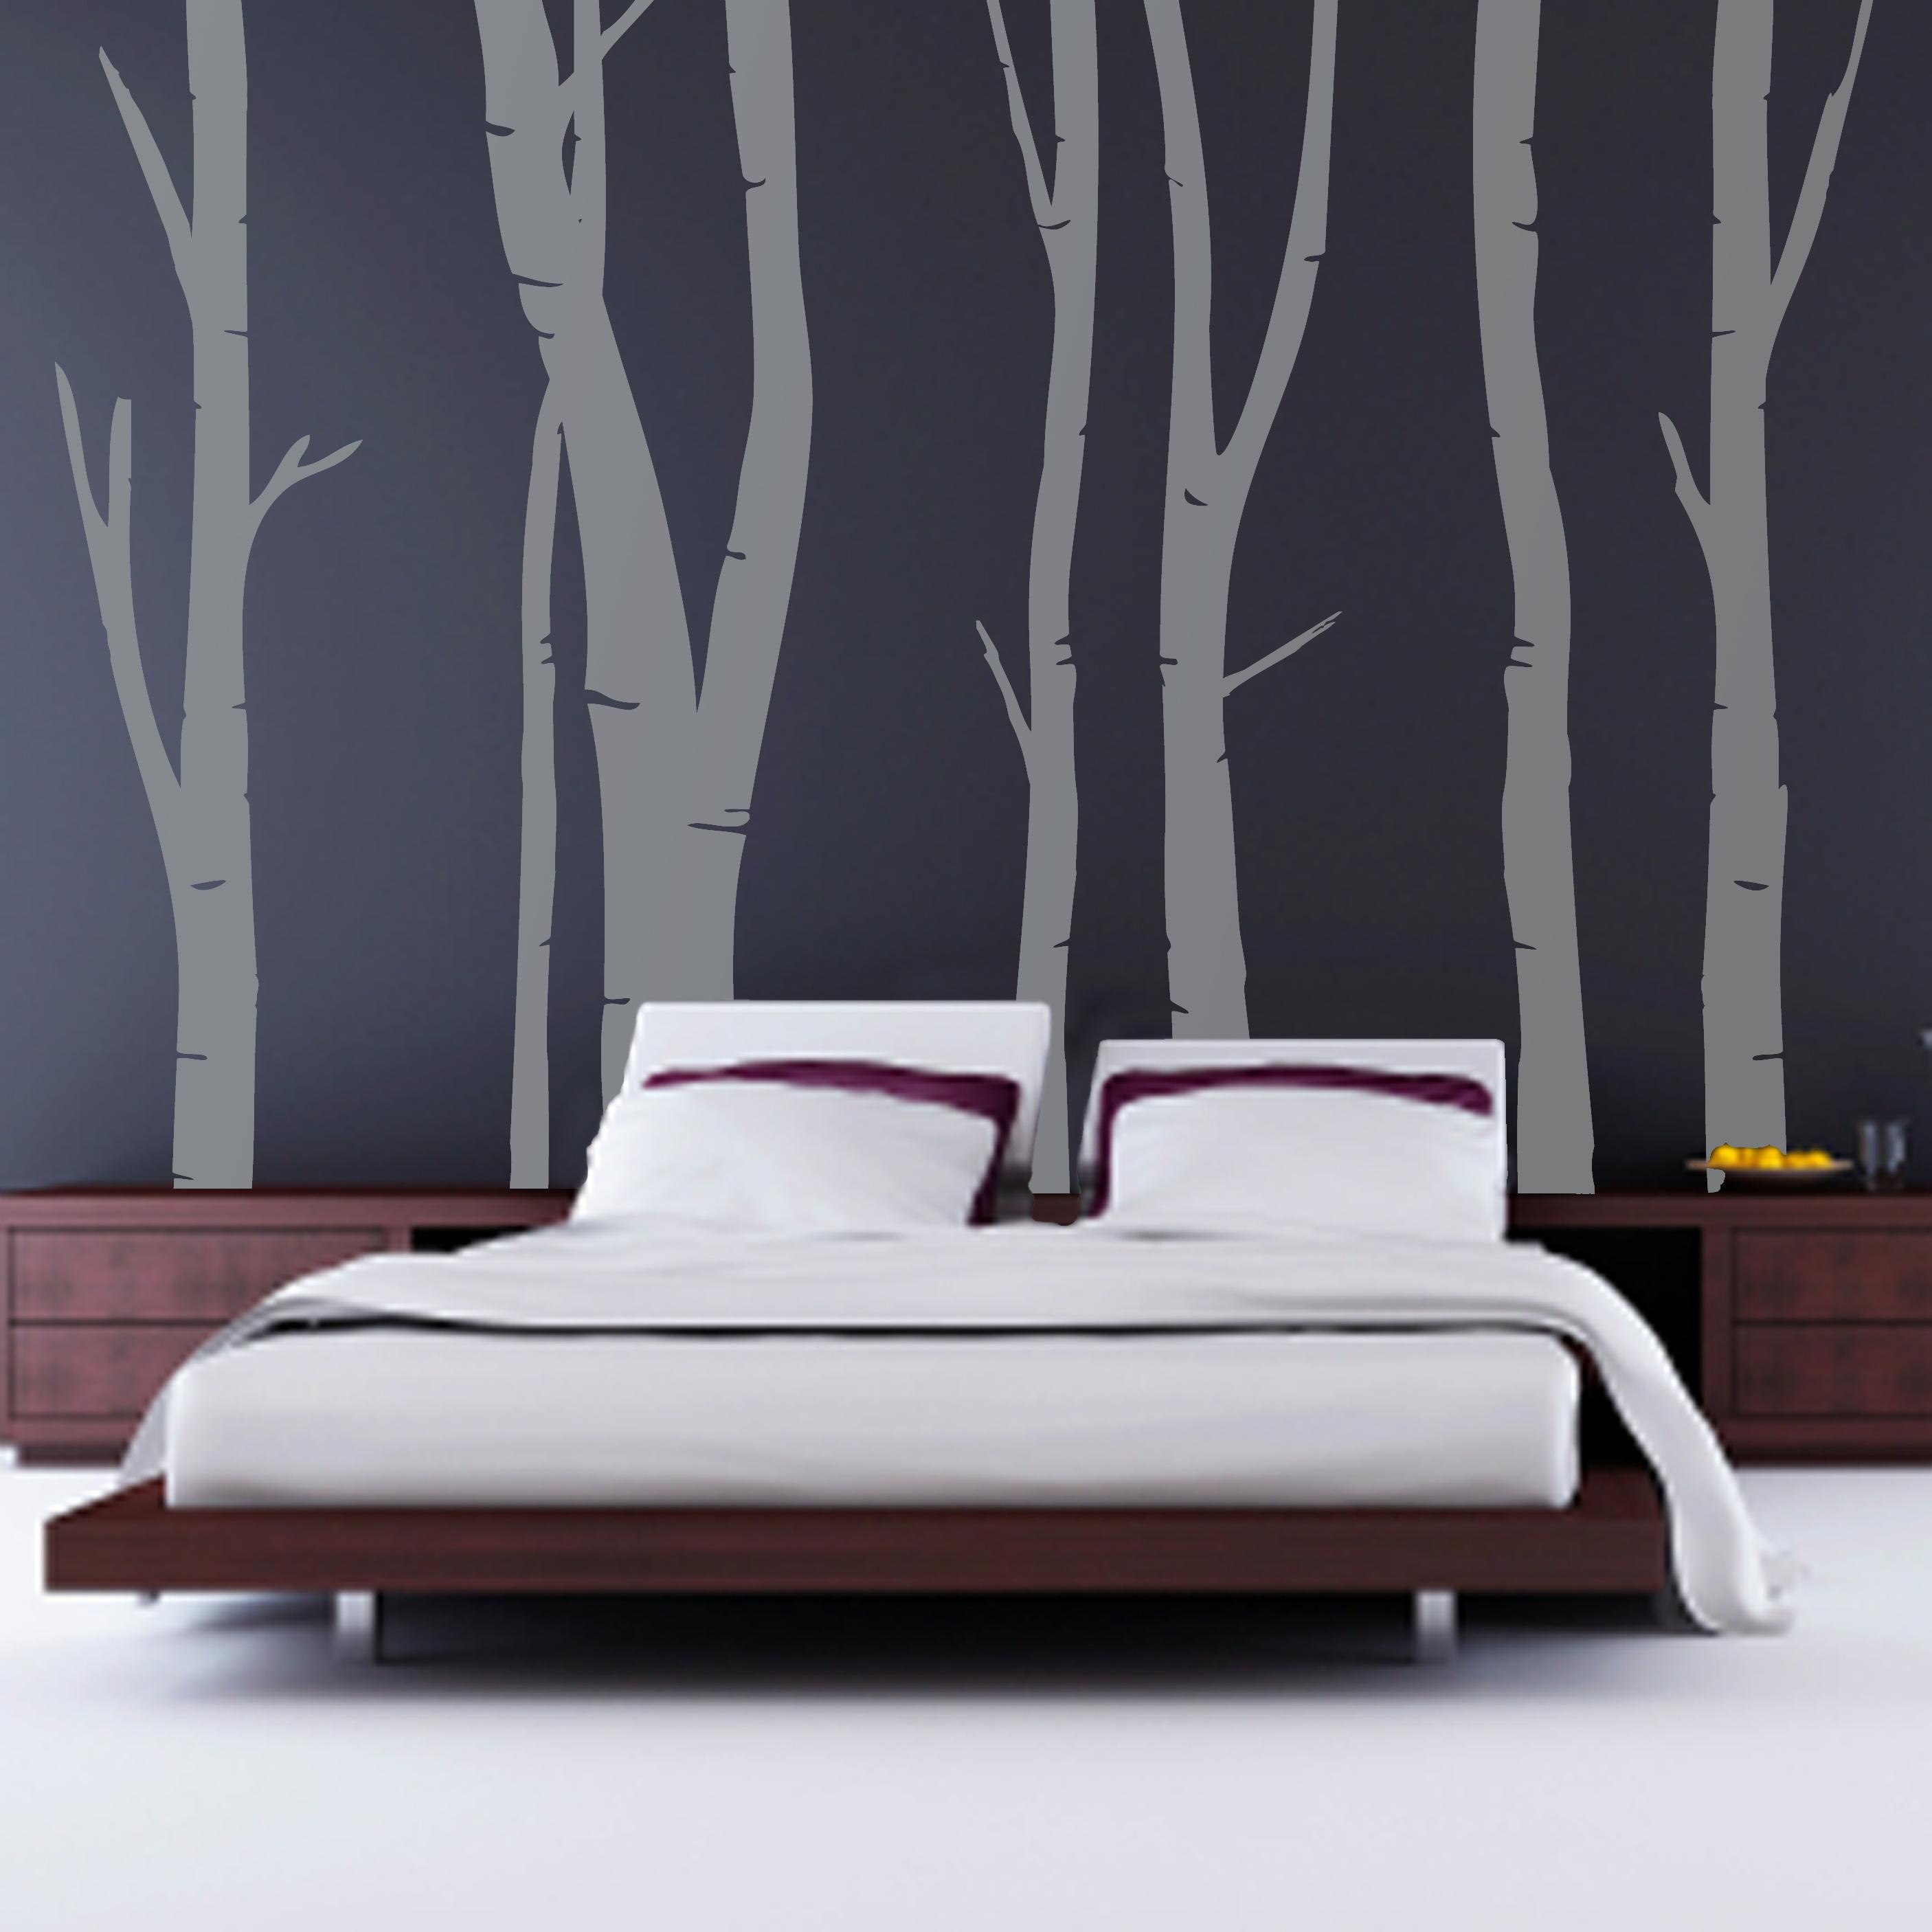 Latest Bedroom Wall Art Image On Bedroom Art Ideas Wall At Modern In Wall Art For Bedroom (Image 15 of 20)